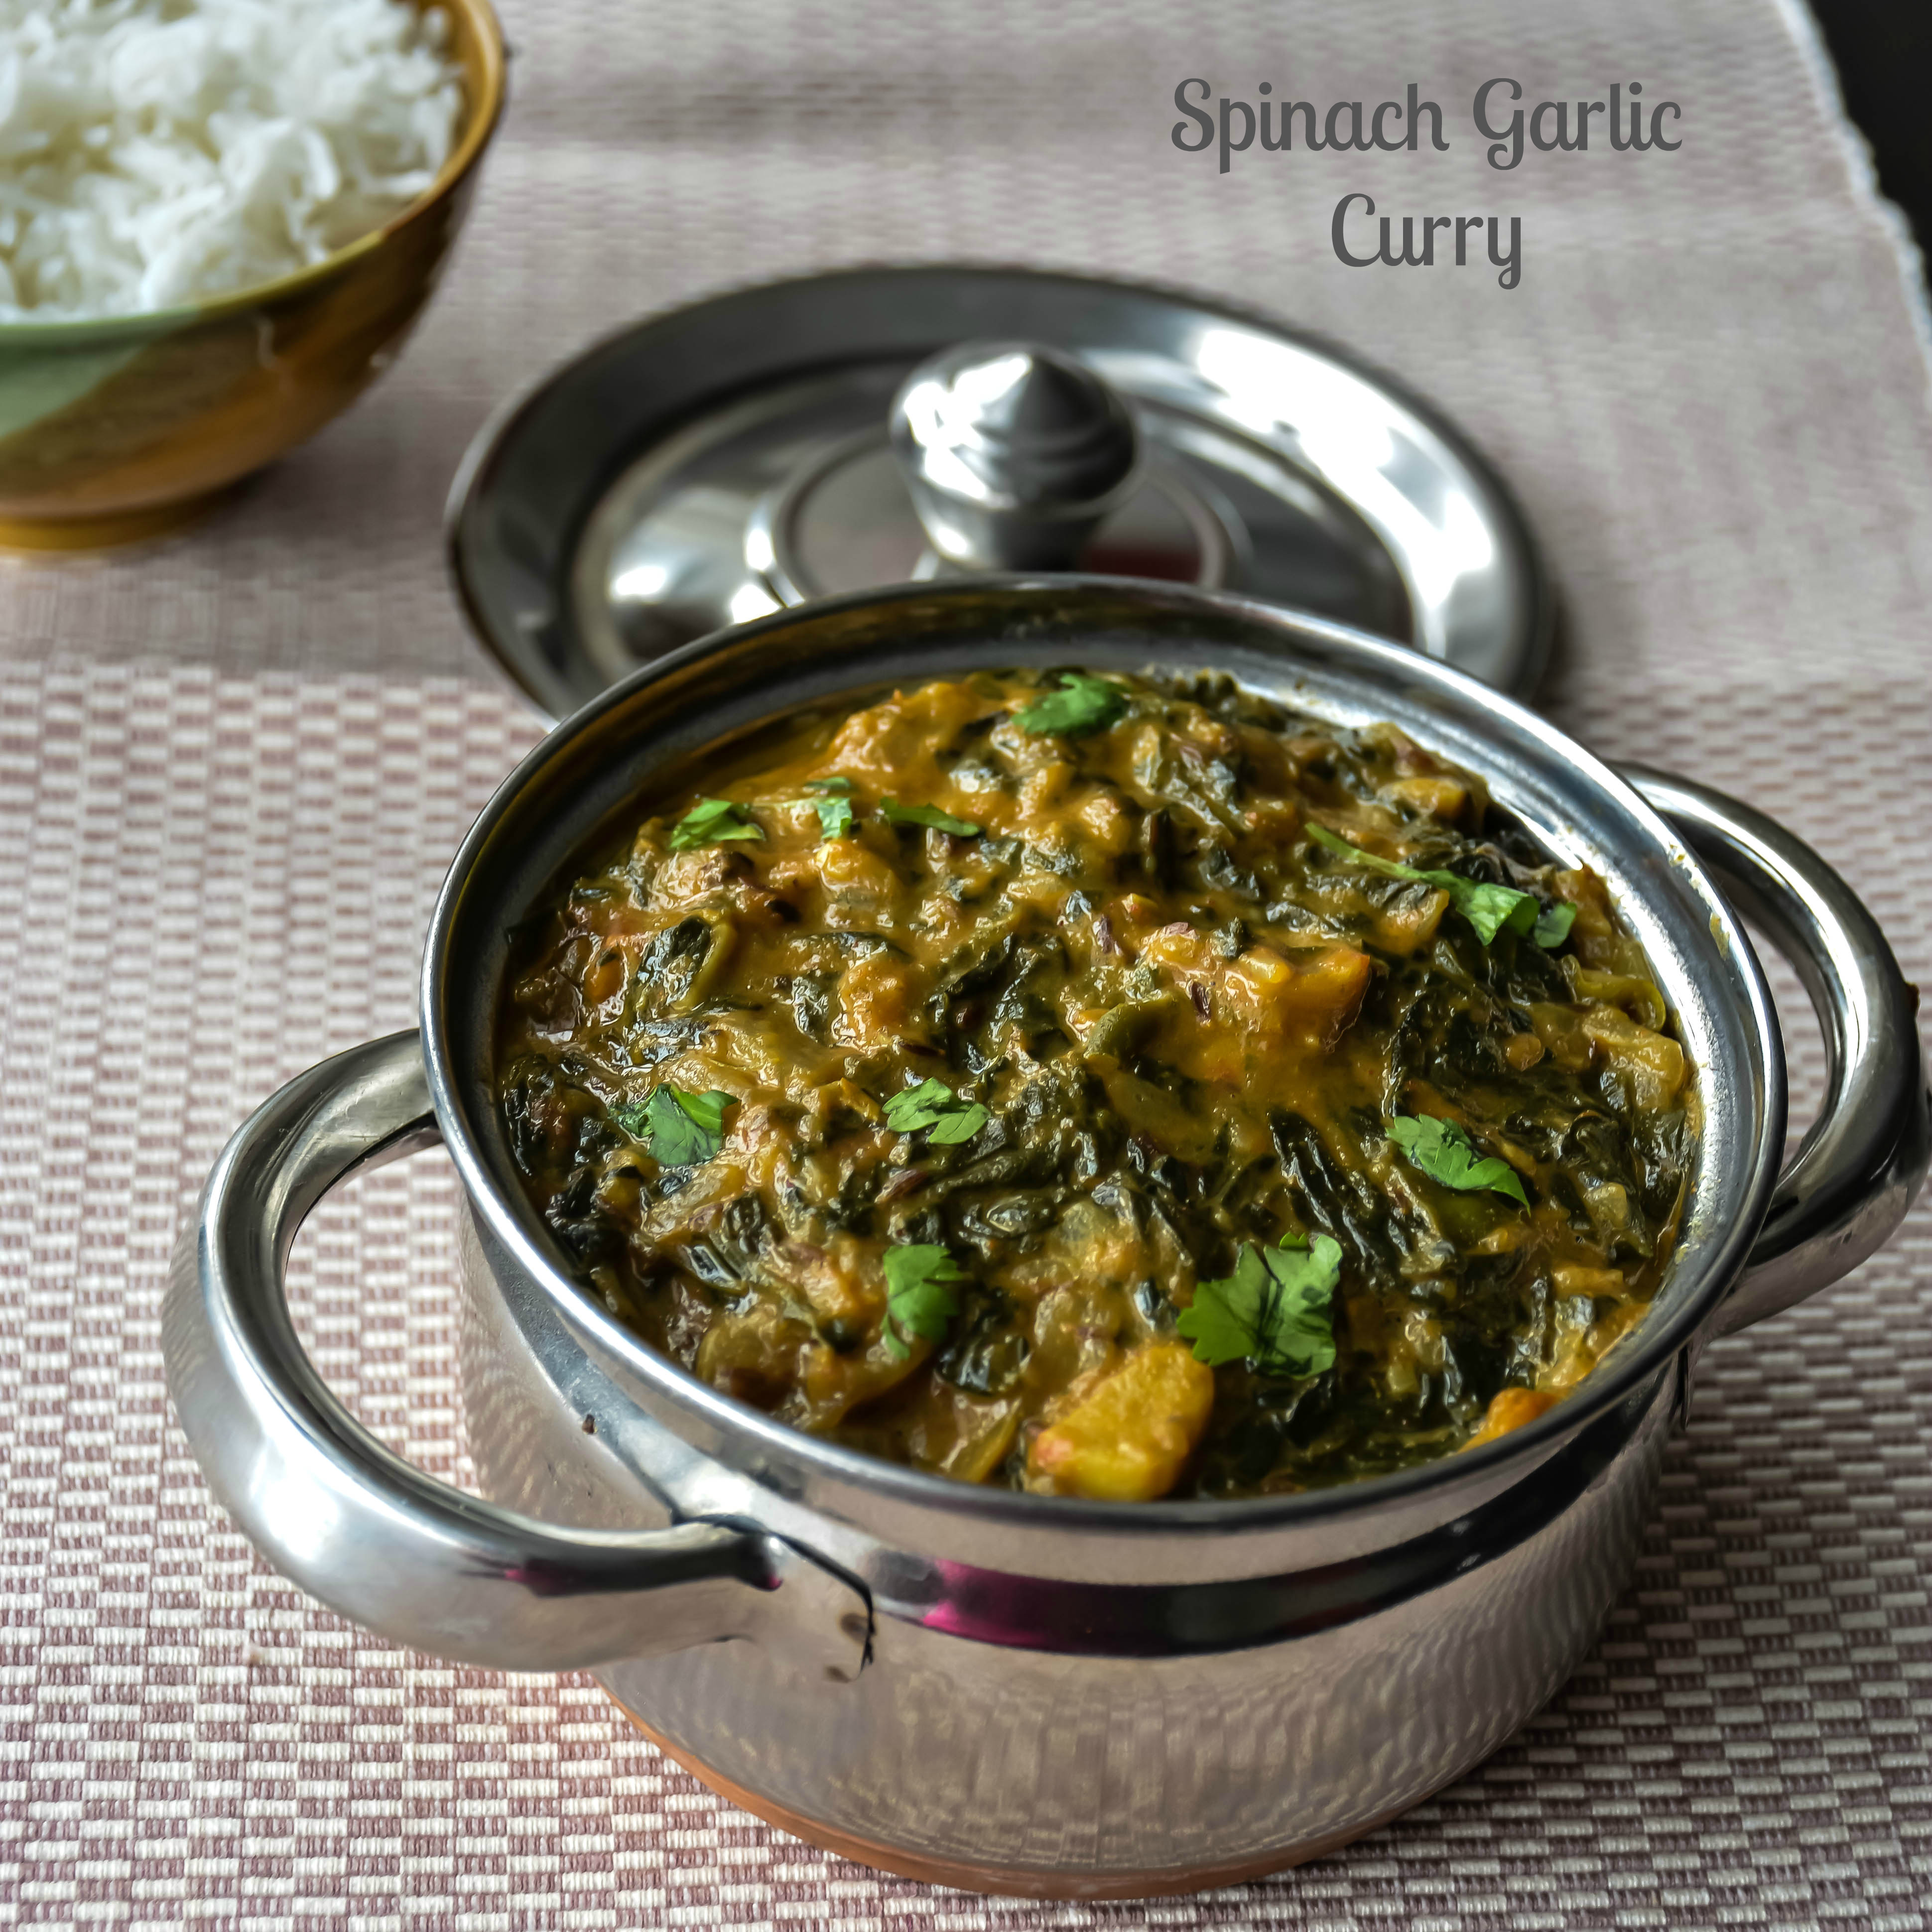 SpinachGarlicCurry